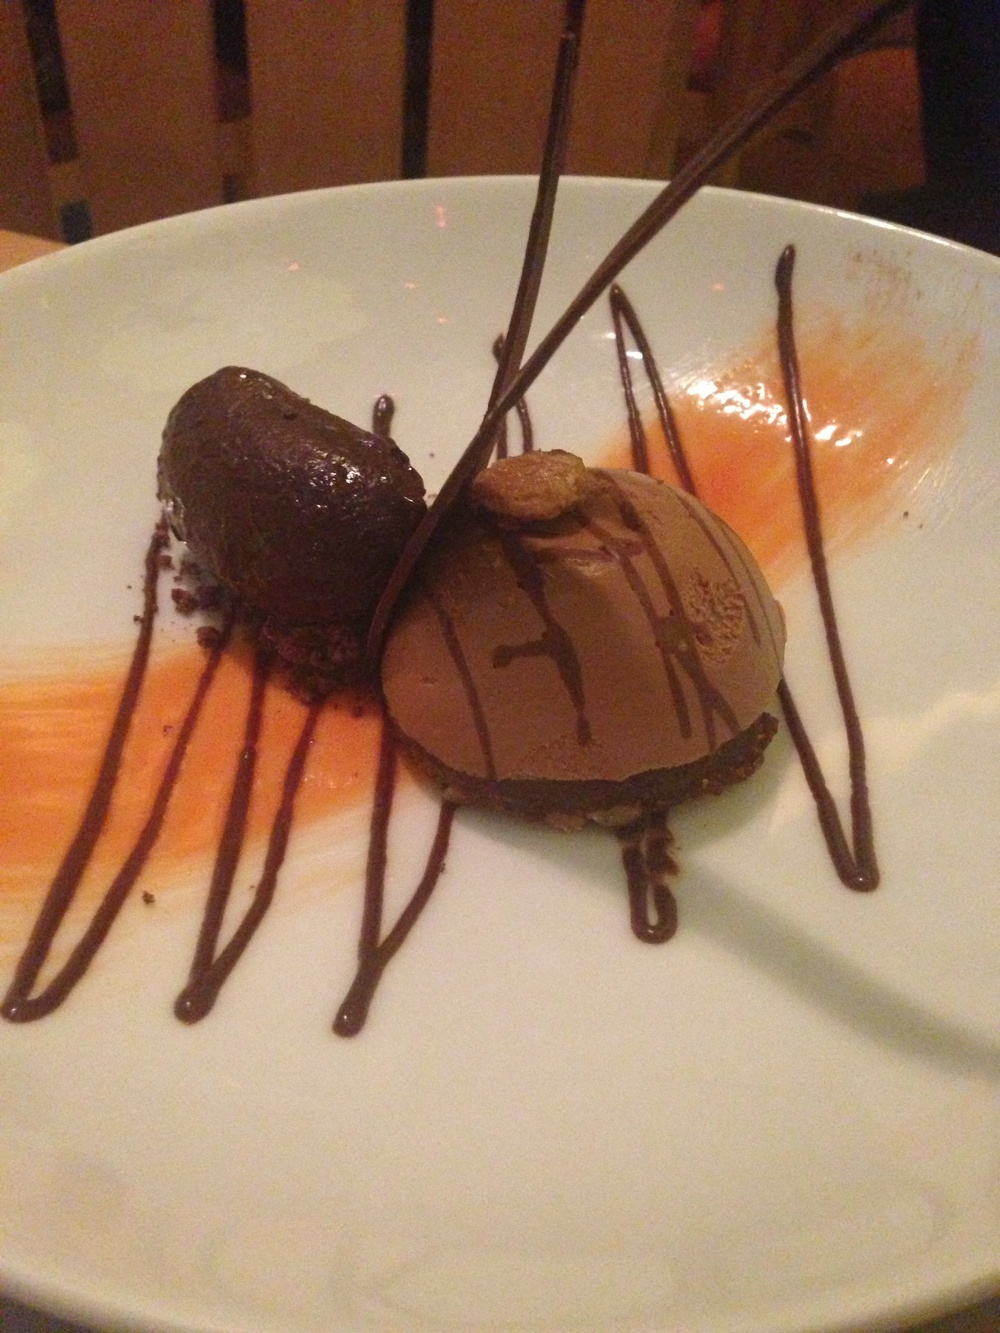 You're never too full for chocolate. This was far superior to the trio.